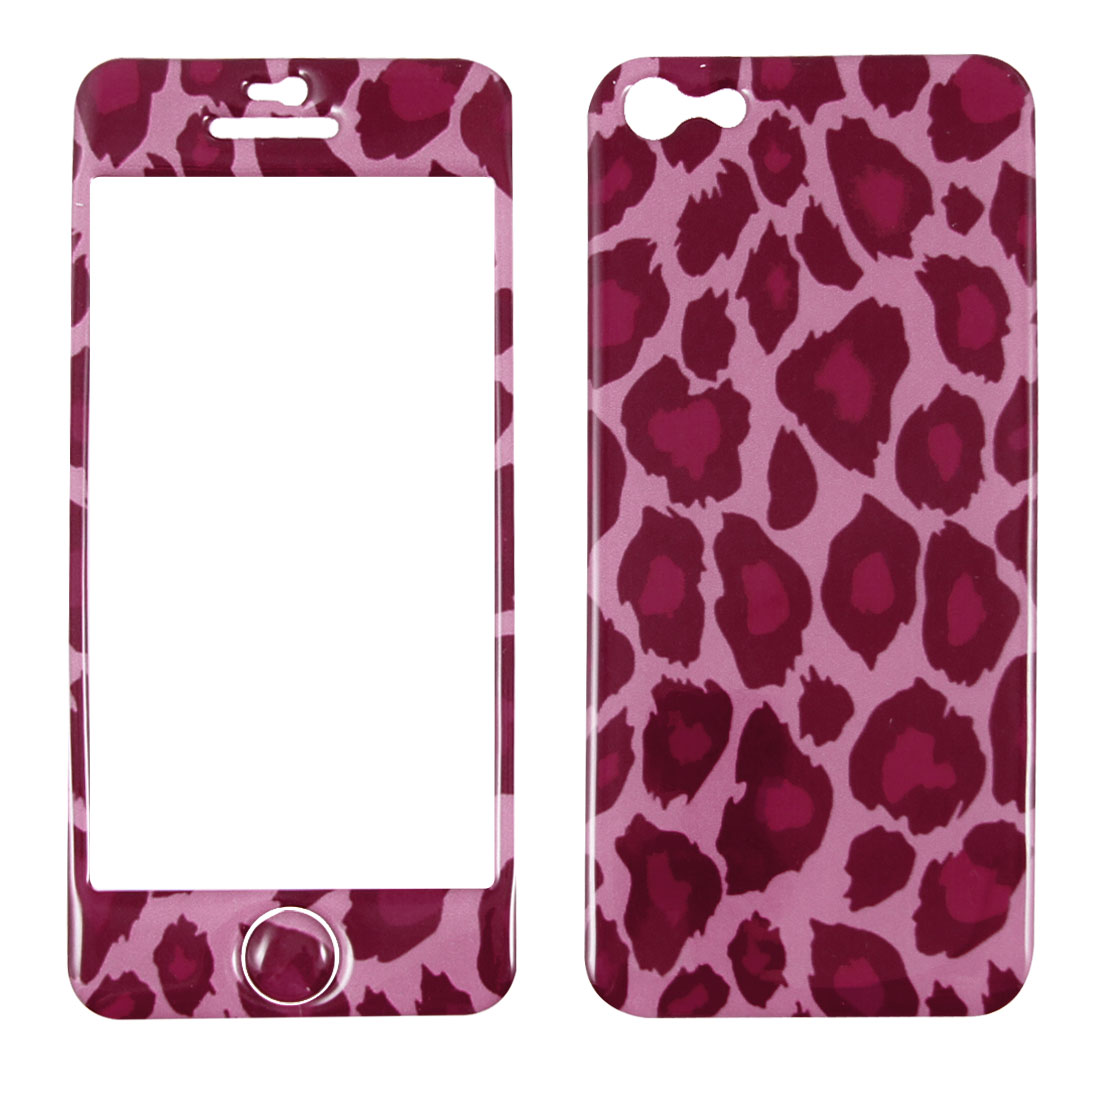 Fuchsia Leopard Print Front Back Sticker Decal Skin Protector for iPhone 5 5G